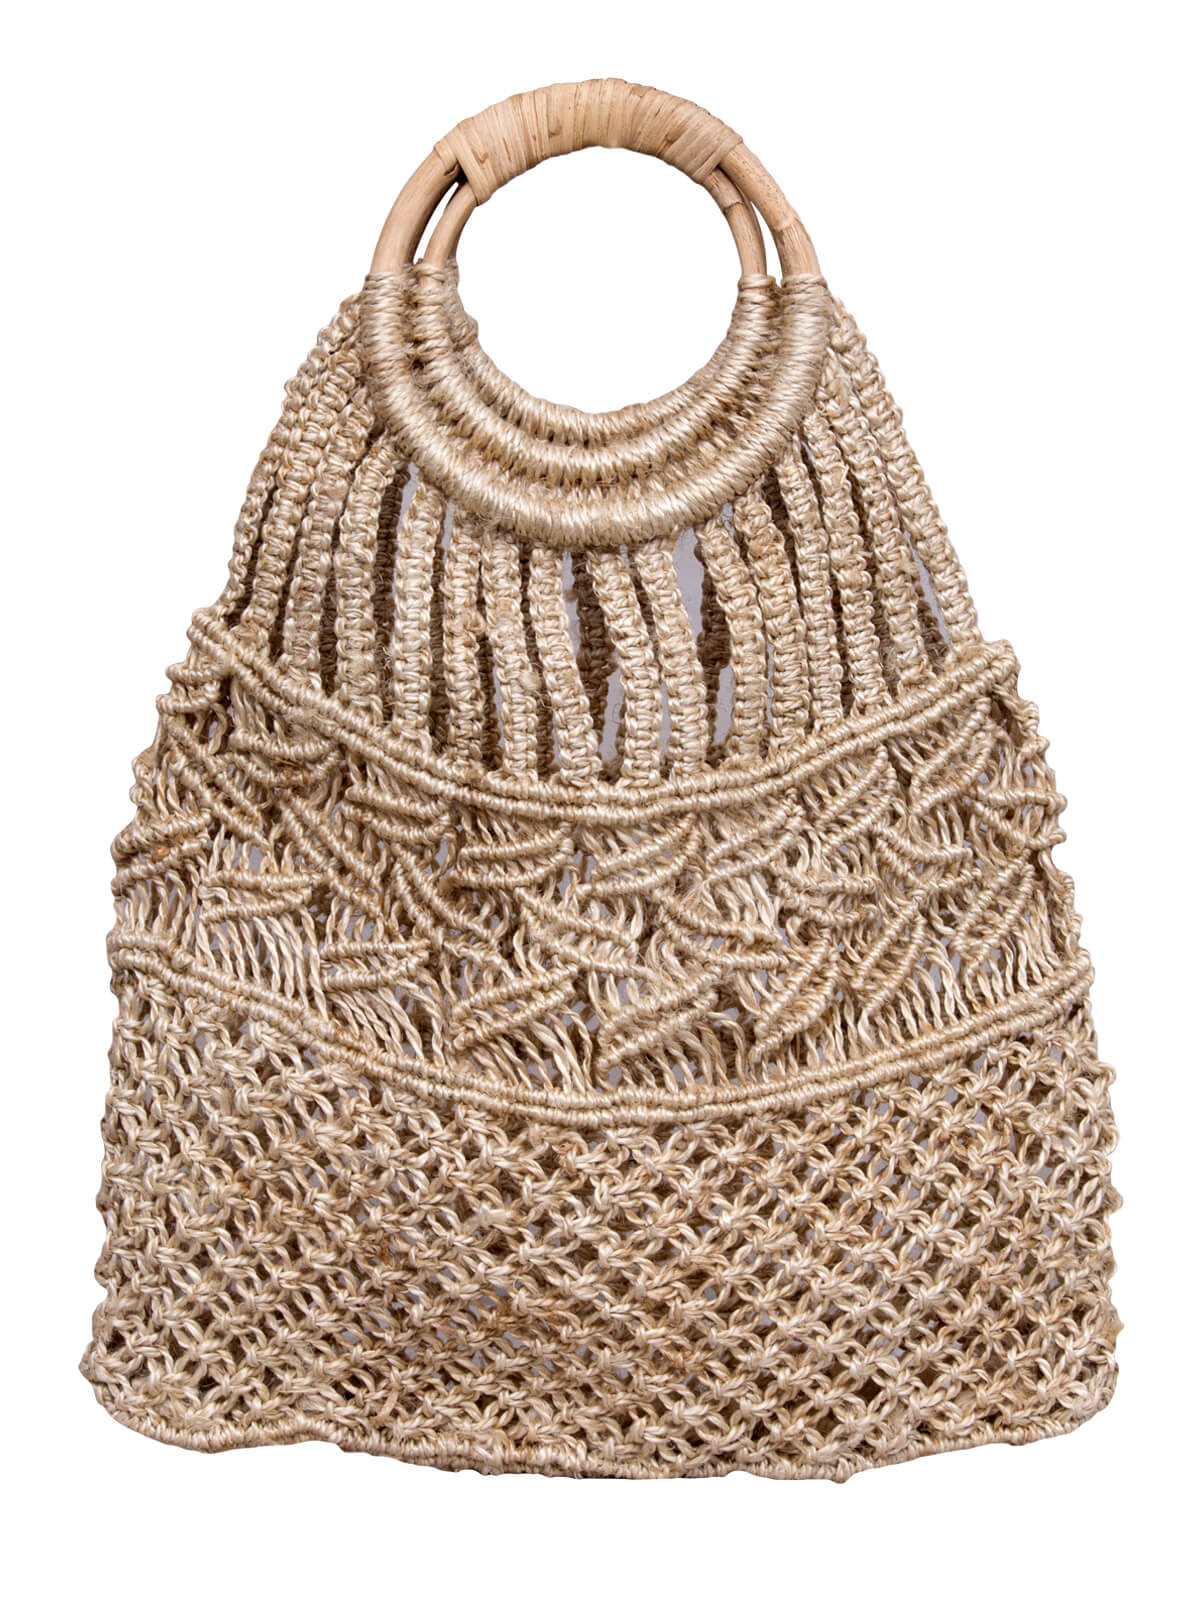 Silk Brown Jute Hand Bag